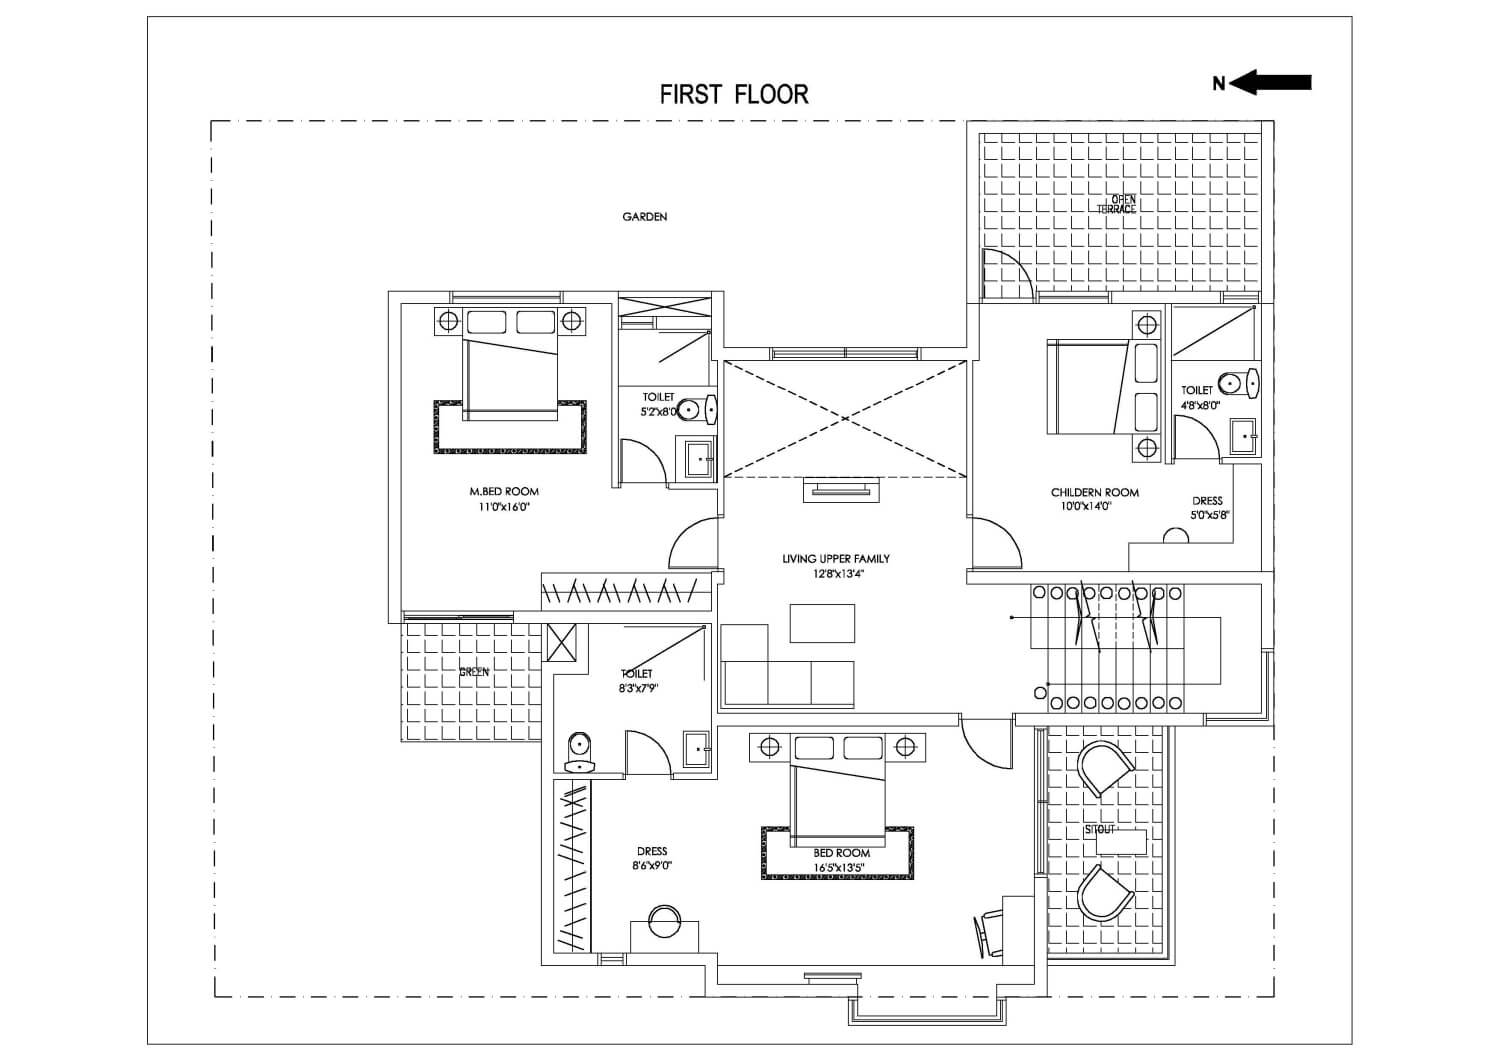 Servant Quarters Floor Plans Luxury Villas In Chennai 4 Bhk For Sale In Ecr With All